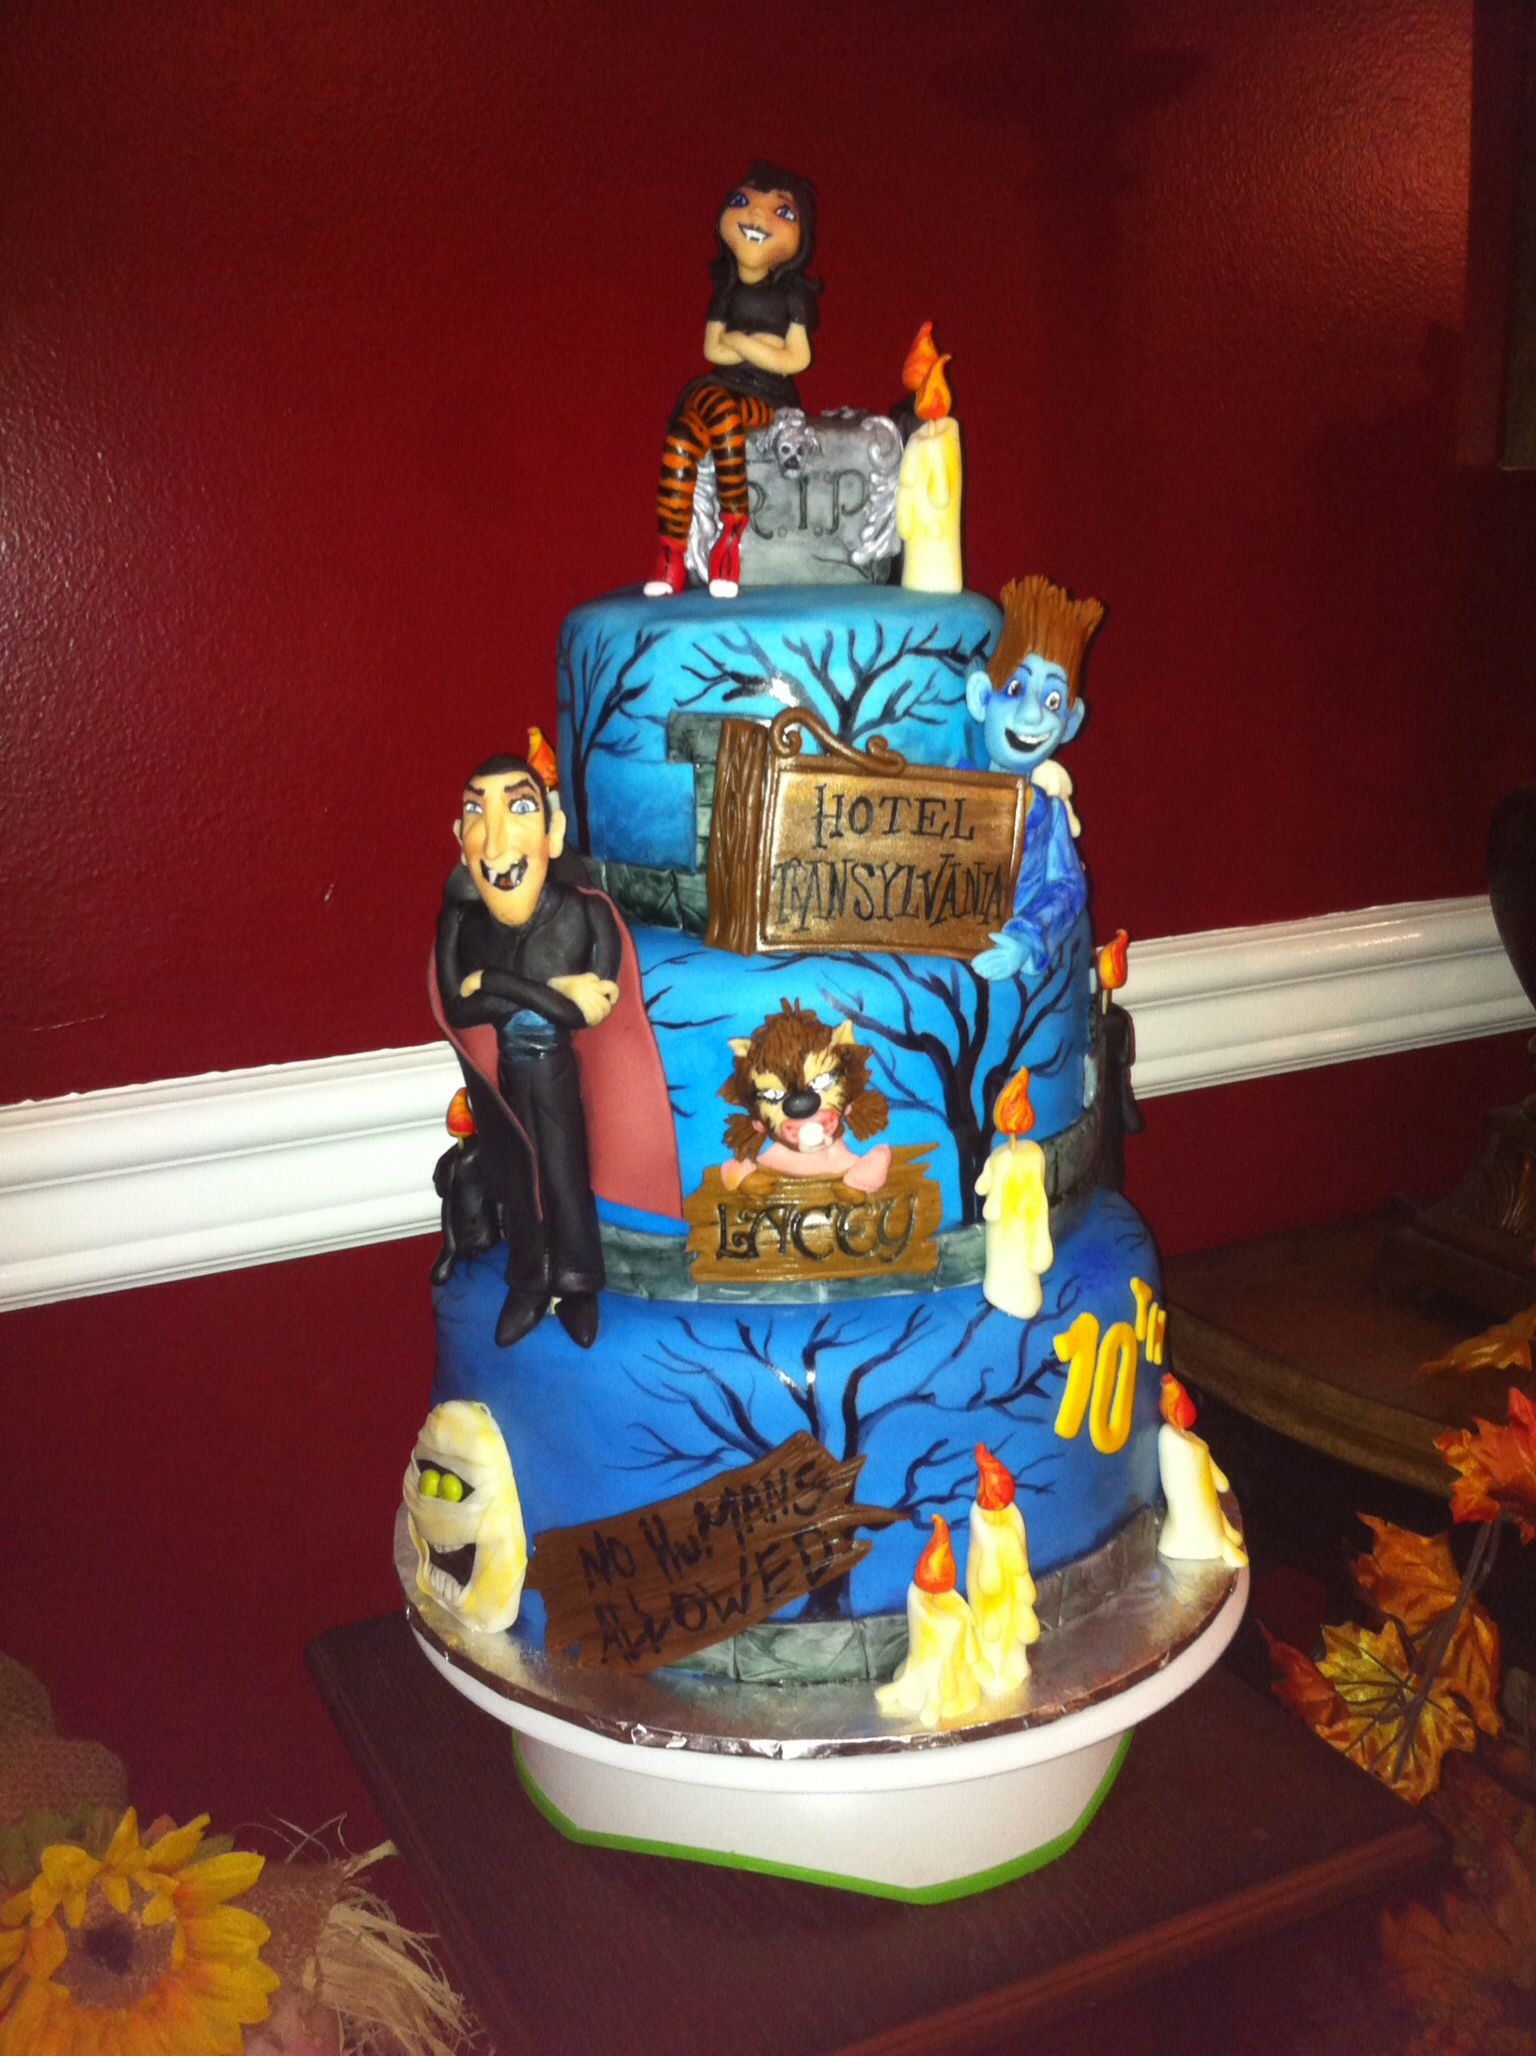 Hotel Transylvania Cake Cakes And Crafts . In 2019